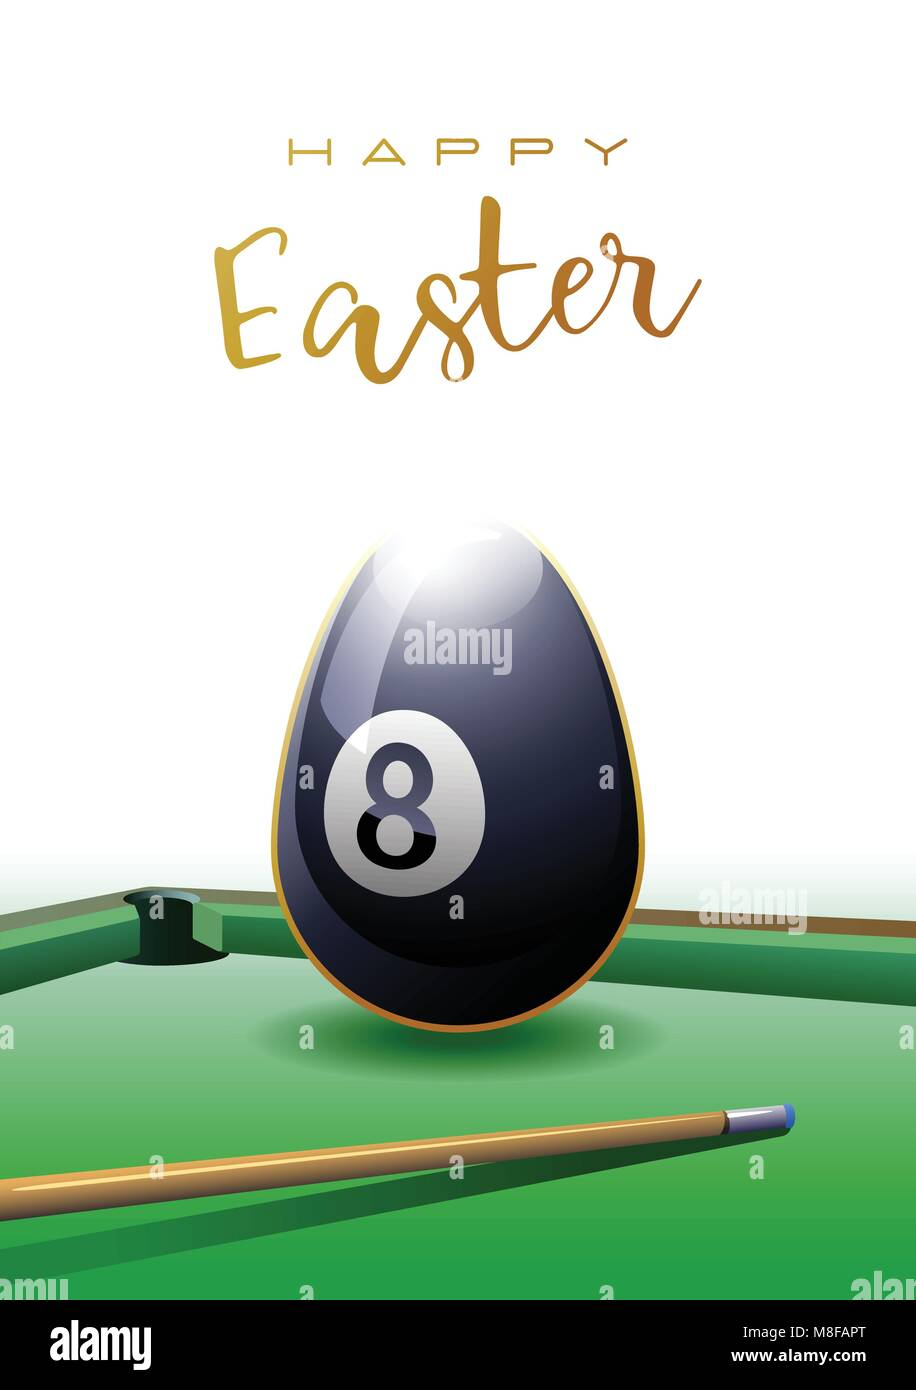 Happy Easter. Sports greeting card. A realistic Easter egg in the shape of a billiard ball. Billiard table and billiard - Stock Vector